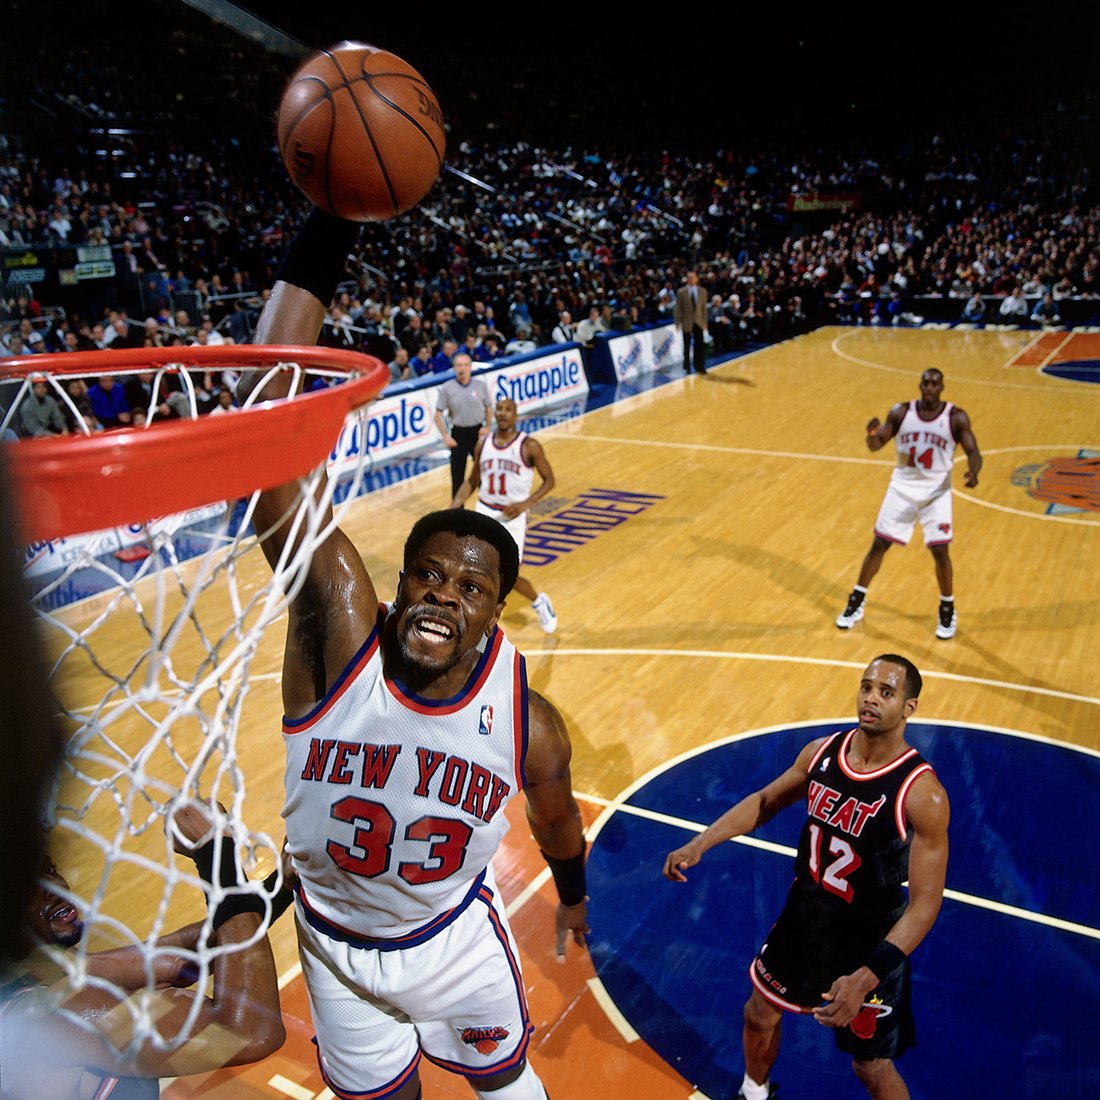 Copyright 1996 NBAE (Photo by Nathaniel S. Butler/NBAE via Getty Images)